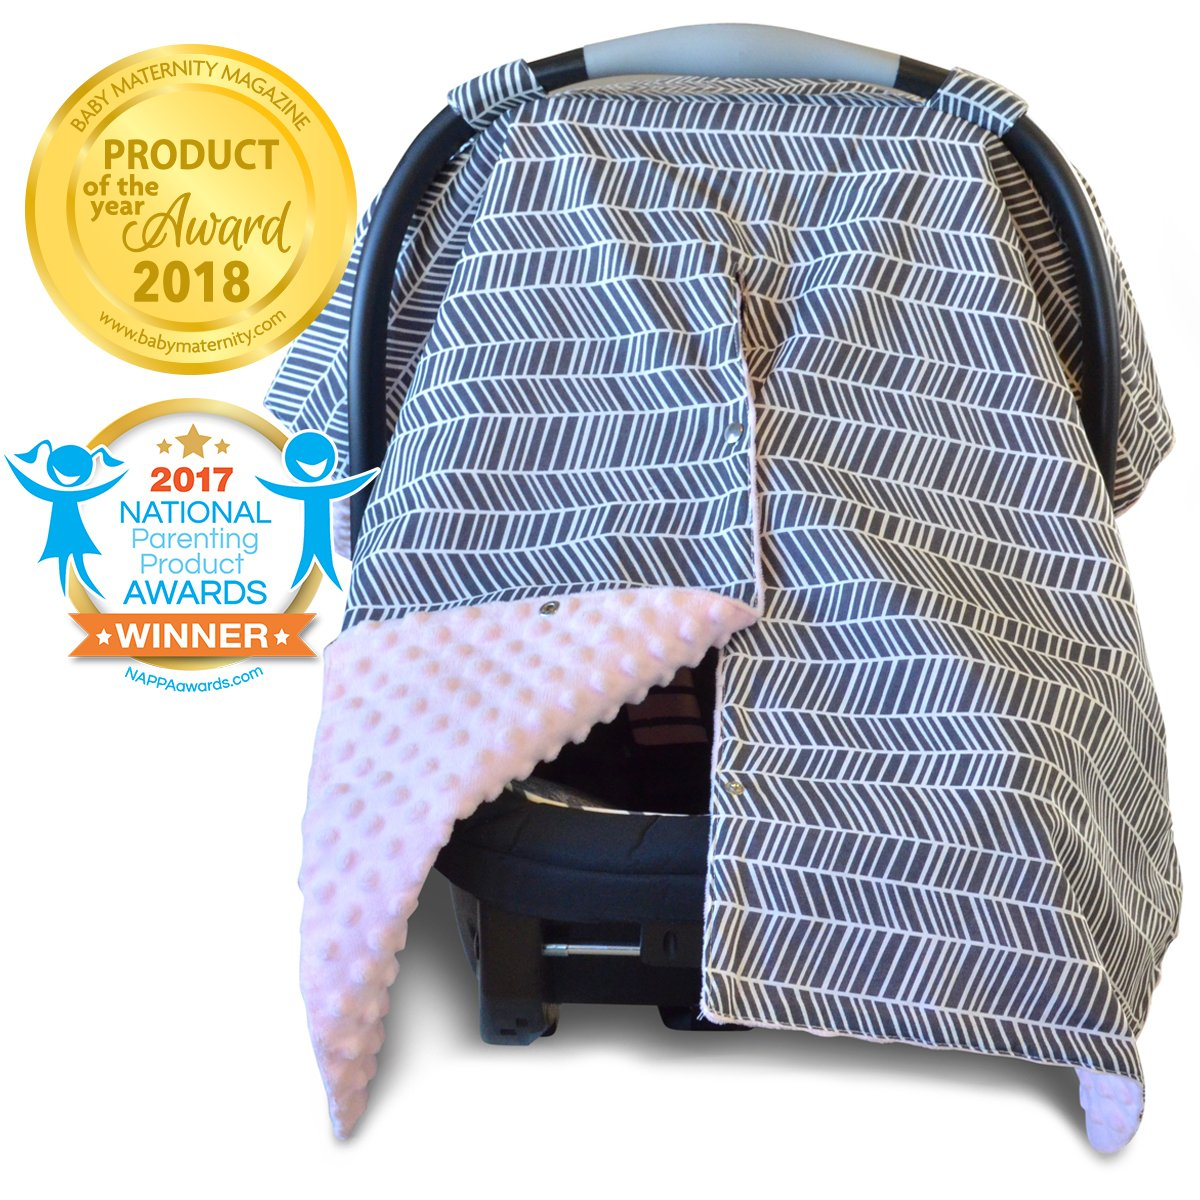 BUCK//DEER /& MINKY INFANT CAR SEAT COVER SET//GRACO FIT /& can custom most brands.